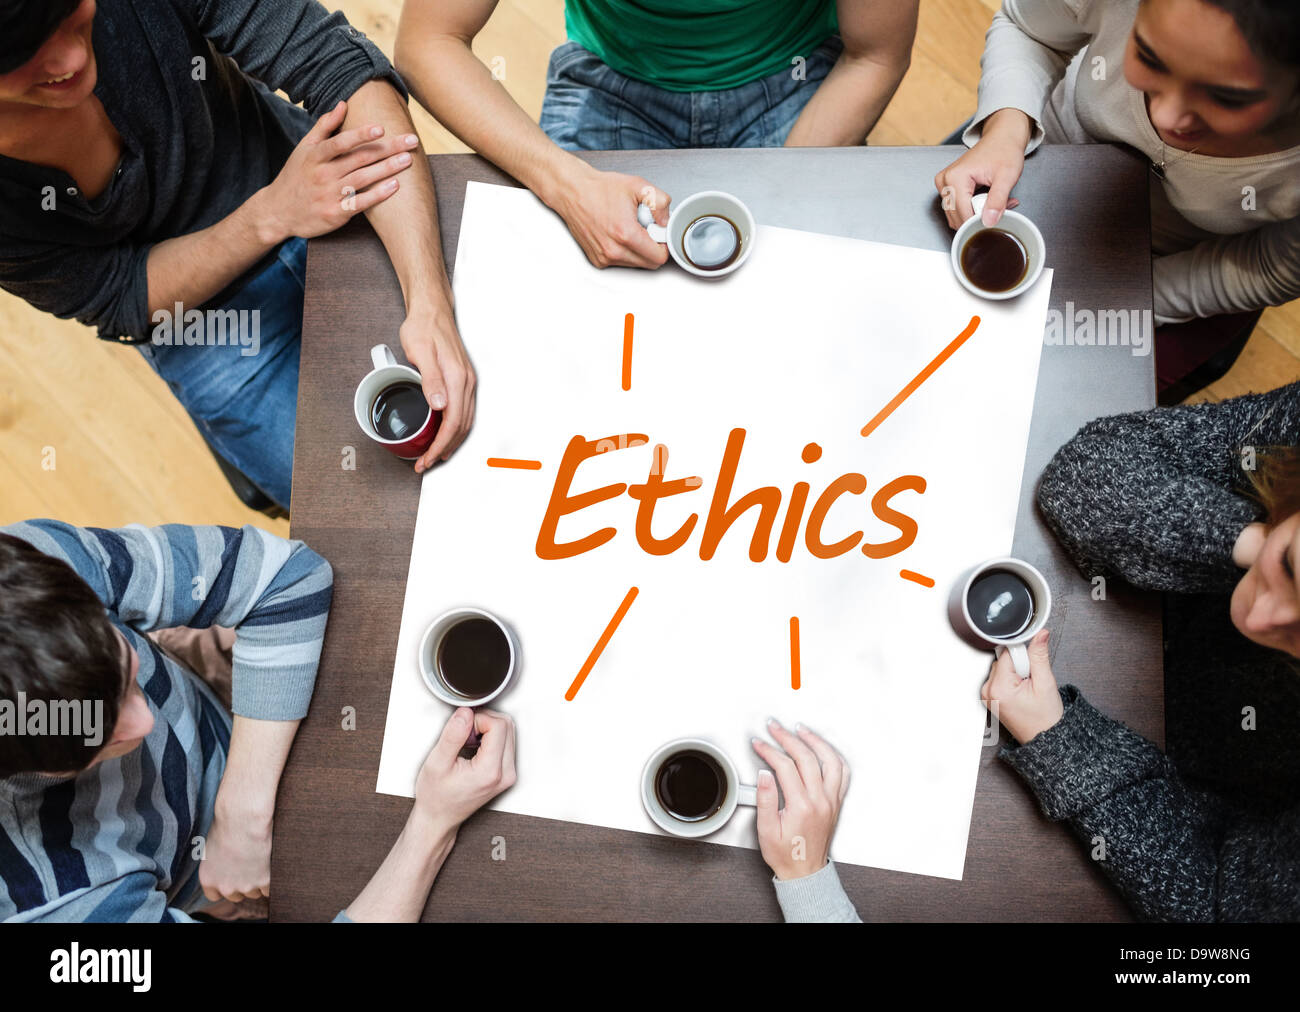 Team brainstorming over a poster with ethics written on it - Stock Image